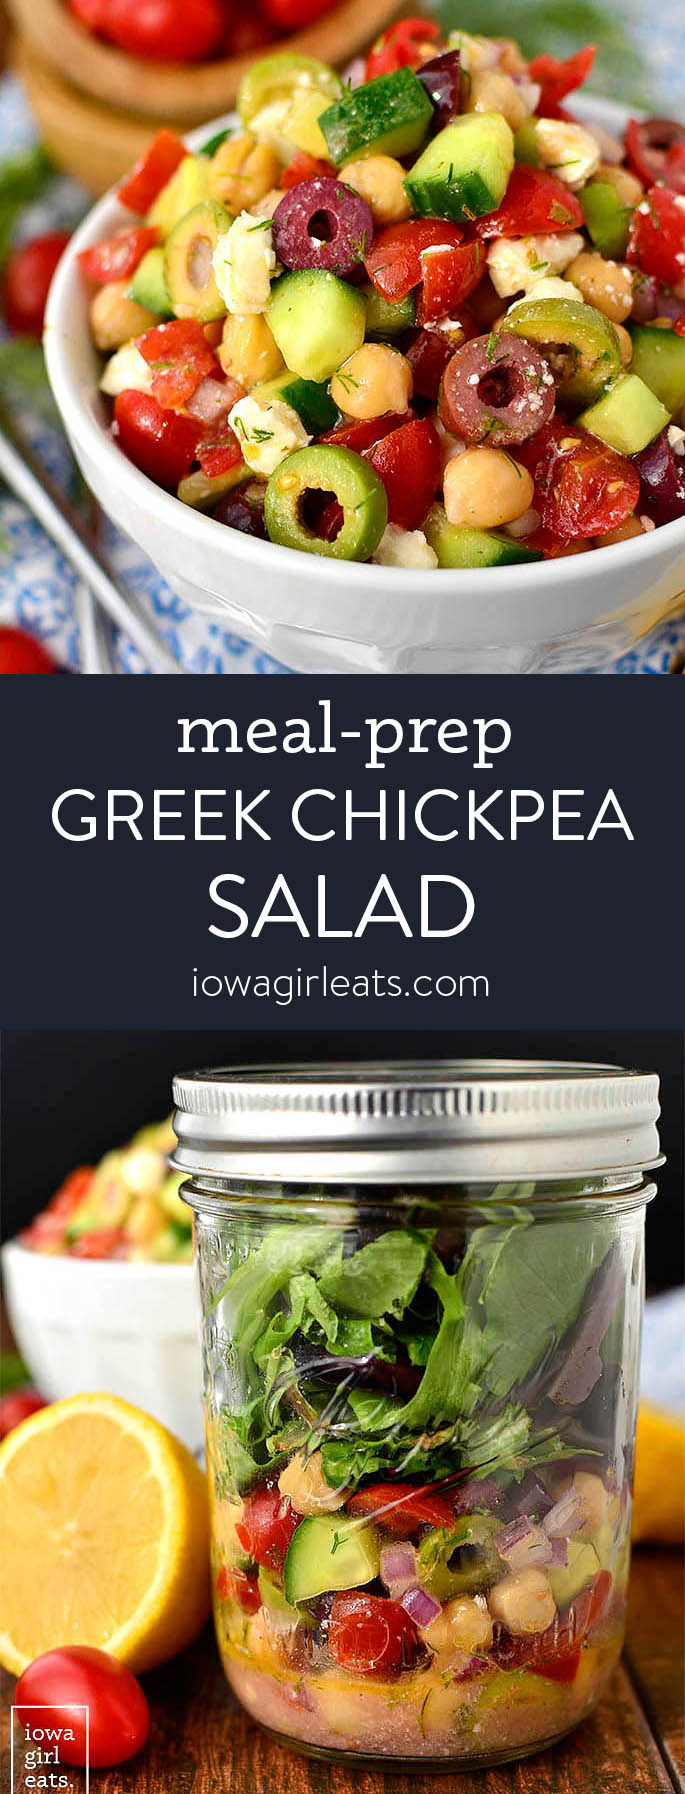 Photo collage of meal prep greek chickpea salad